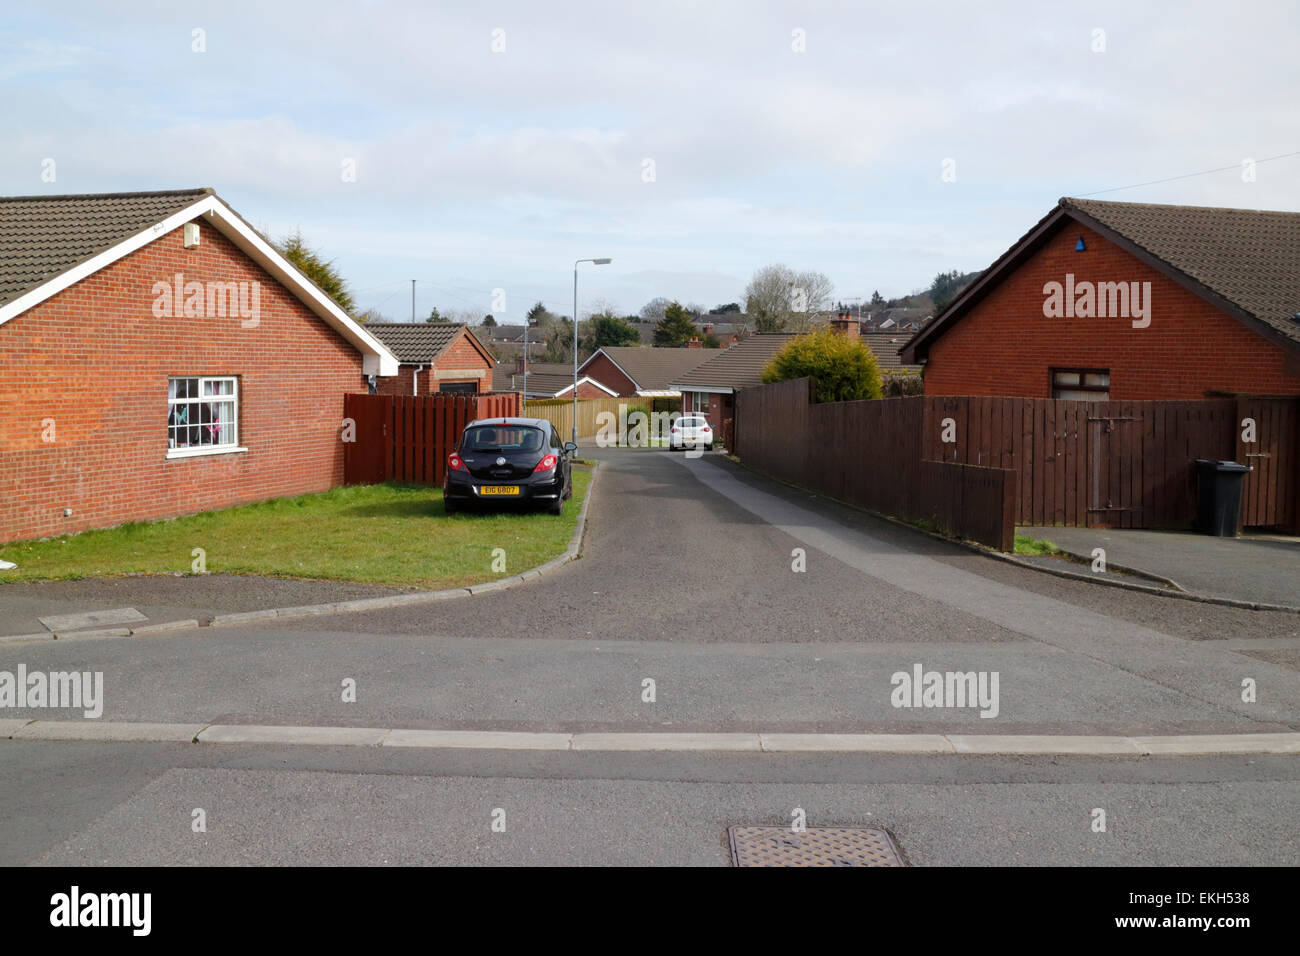 cul-de-sac in a residential housing estate of bungalows in the uk - Stock Image